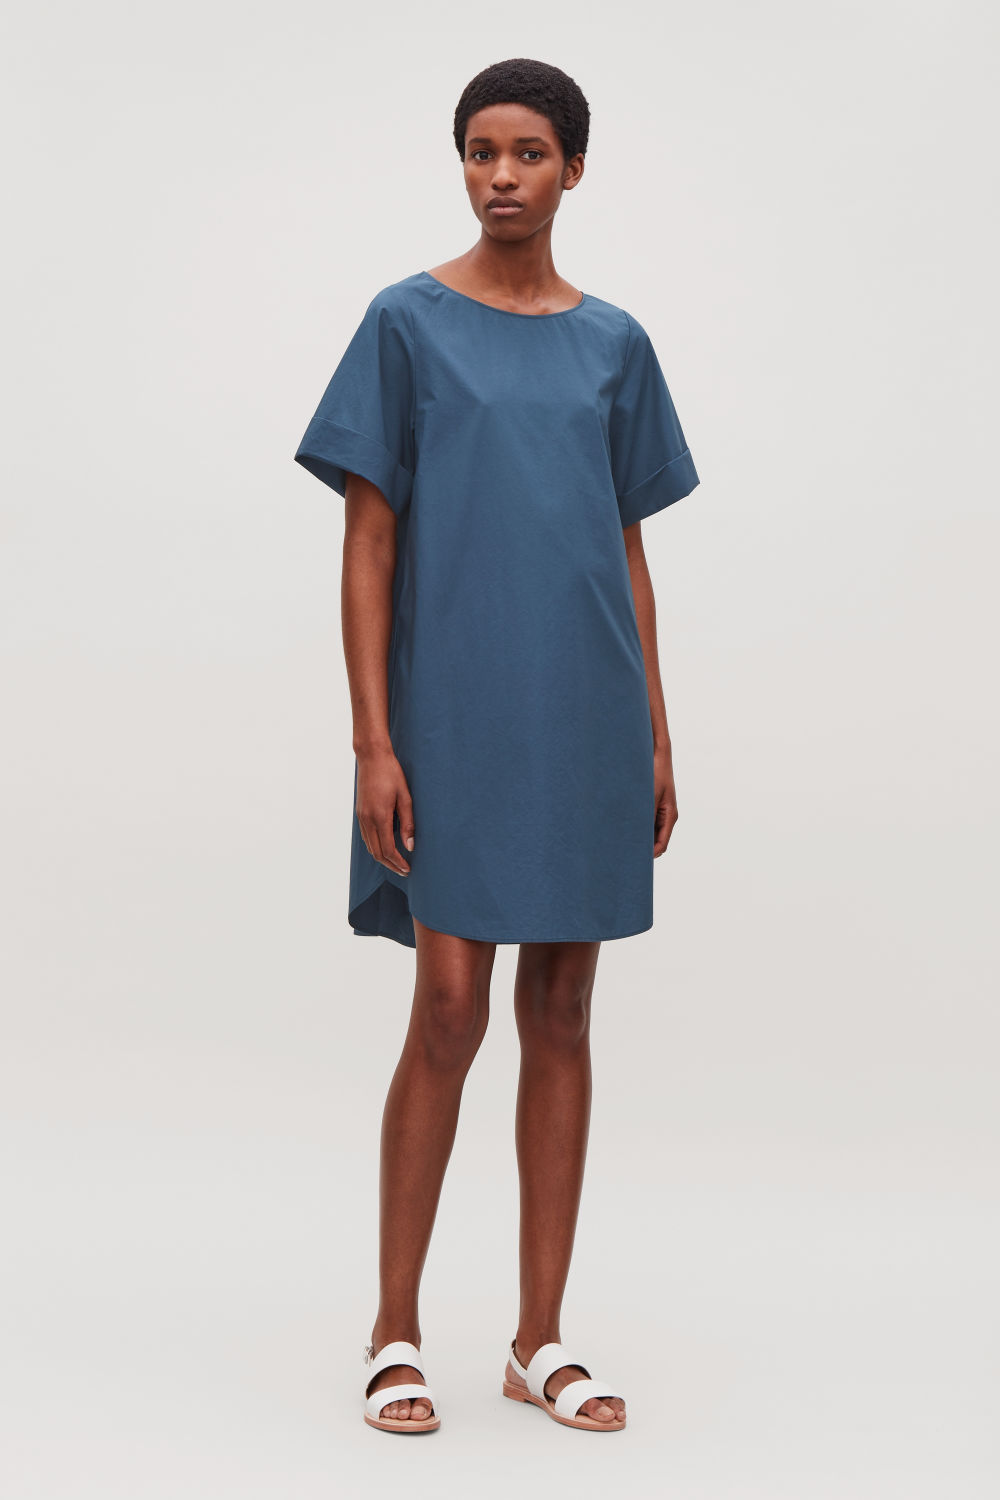 ¾-SLEEVED A-LINE DRESS